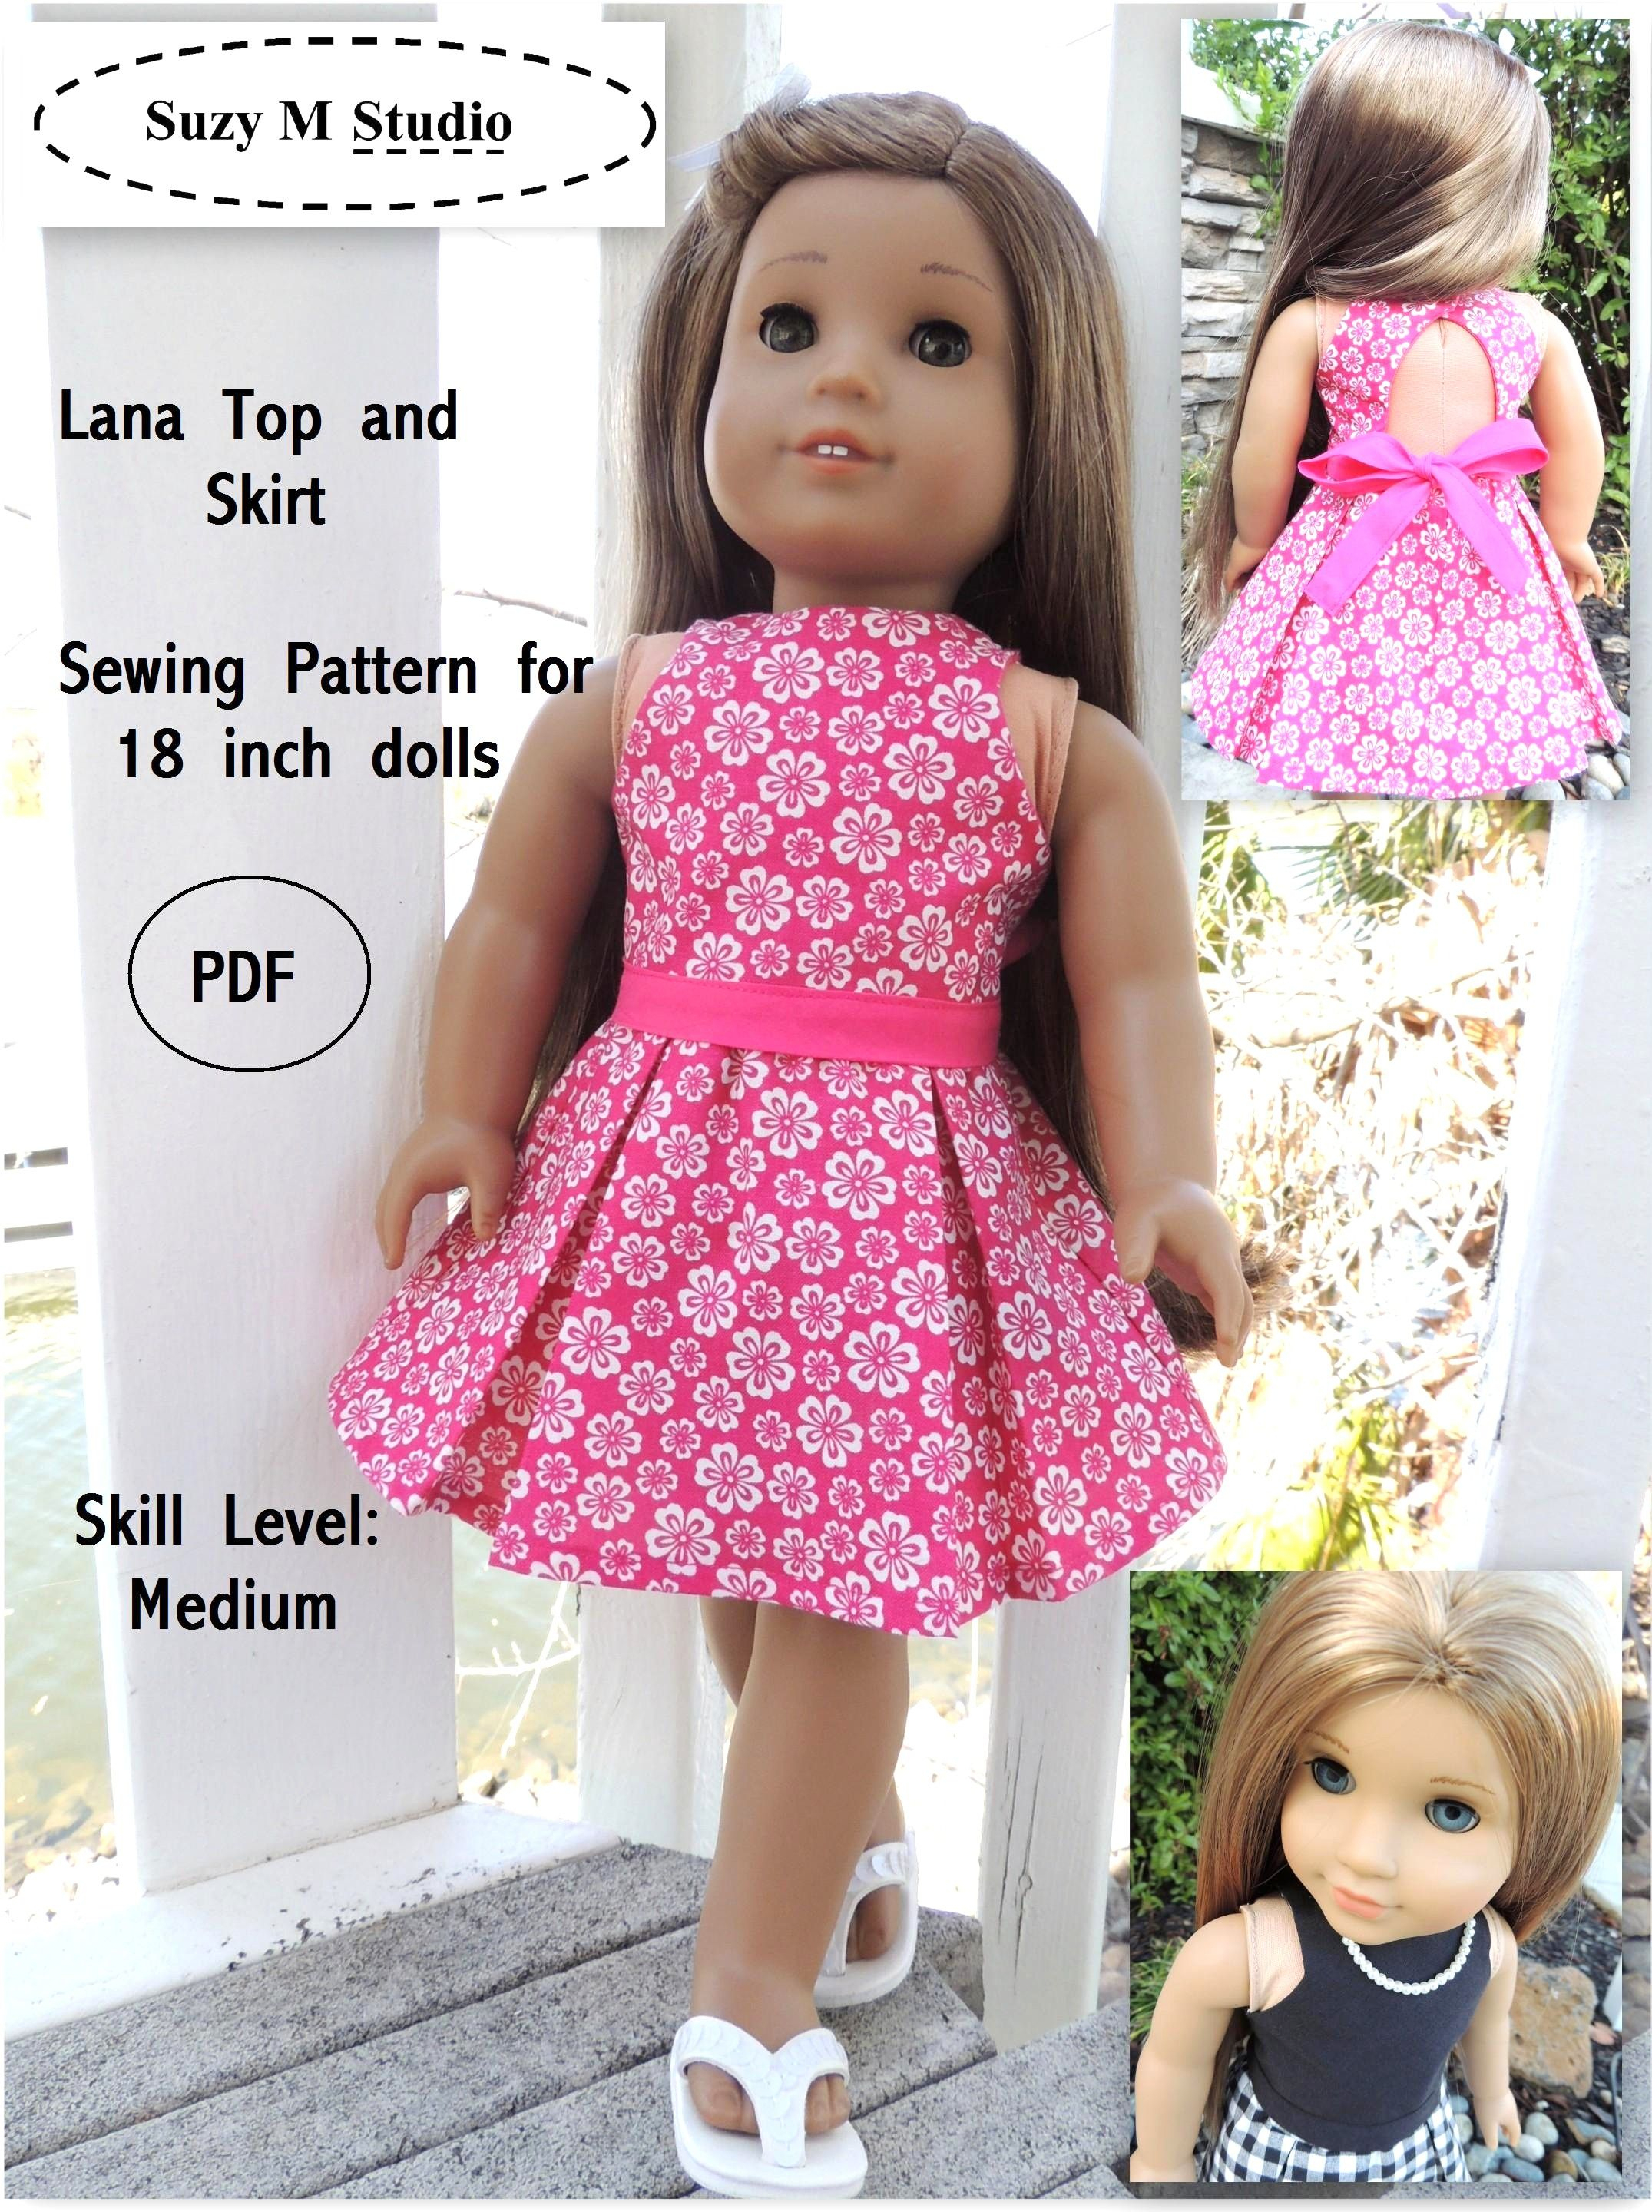 Free Tutorial Pdf | Suzymstudio … | Doll Clothes | Doll … - Free Printable Crochet Doll Clothes Patterns For 18 Inch Dolls